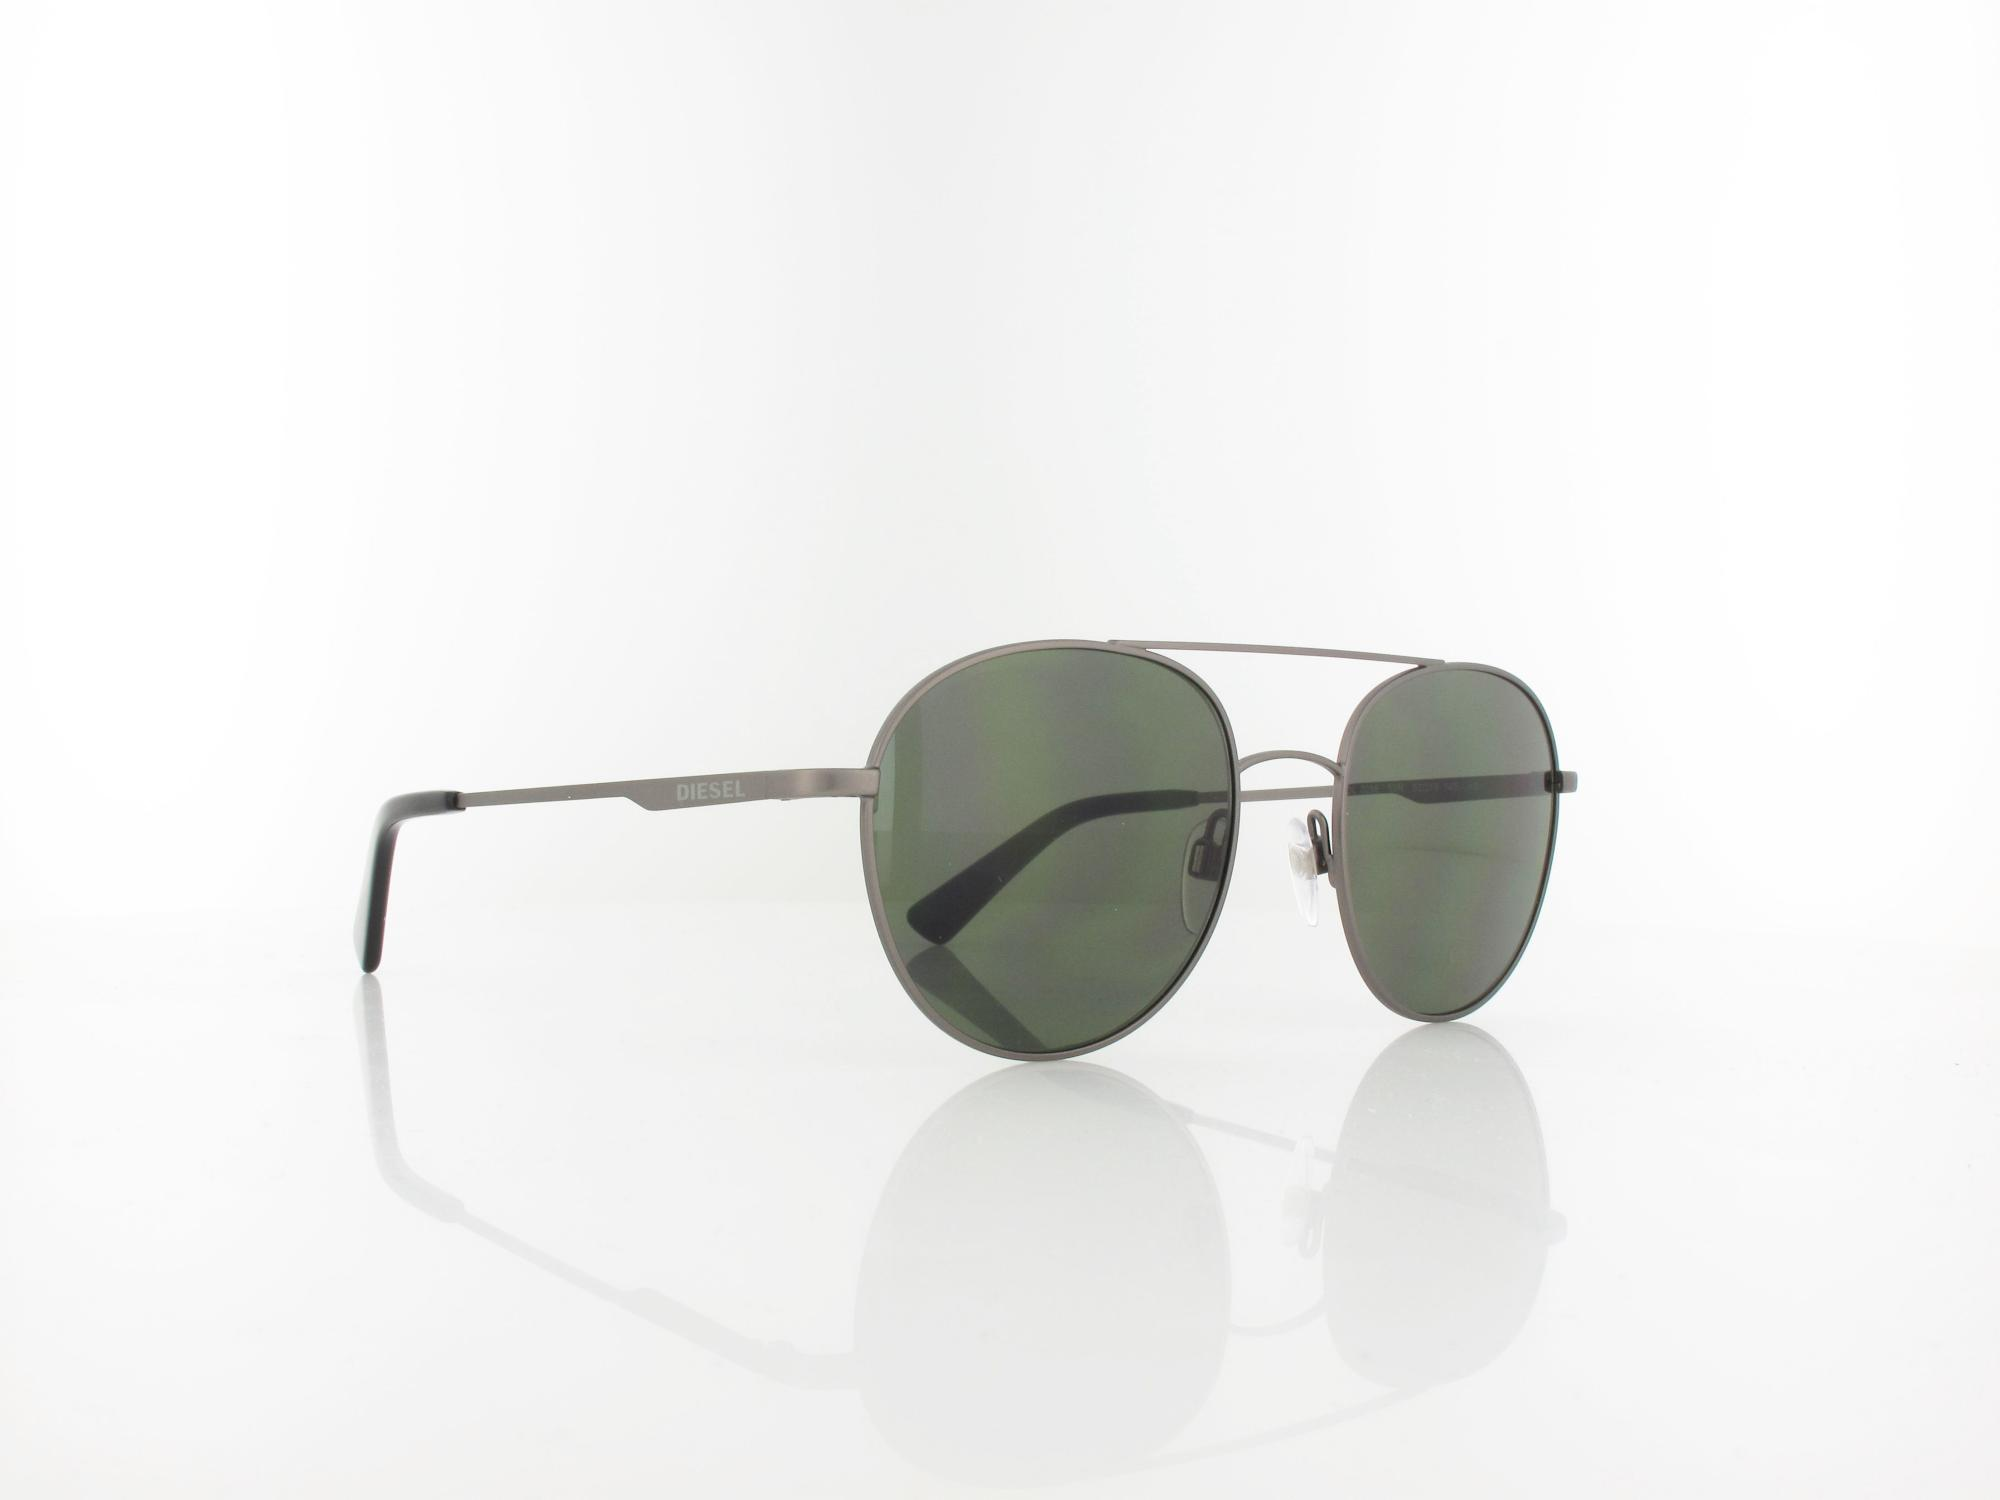 Diesel | DL0286 09N 52 | matte anthracite / green